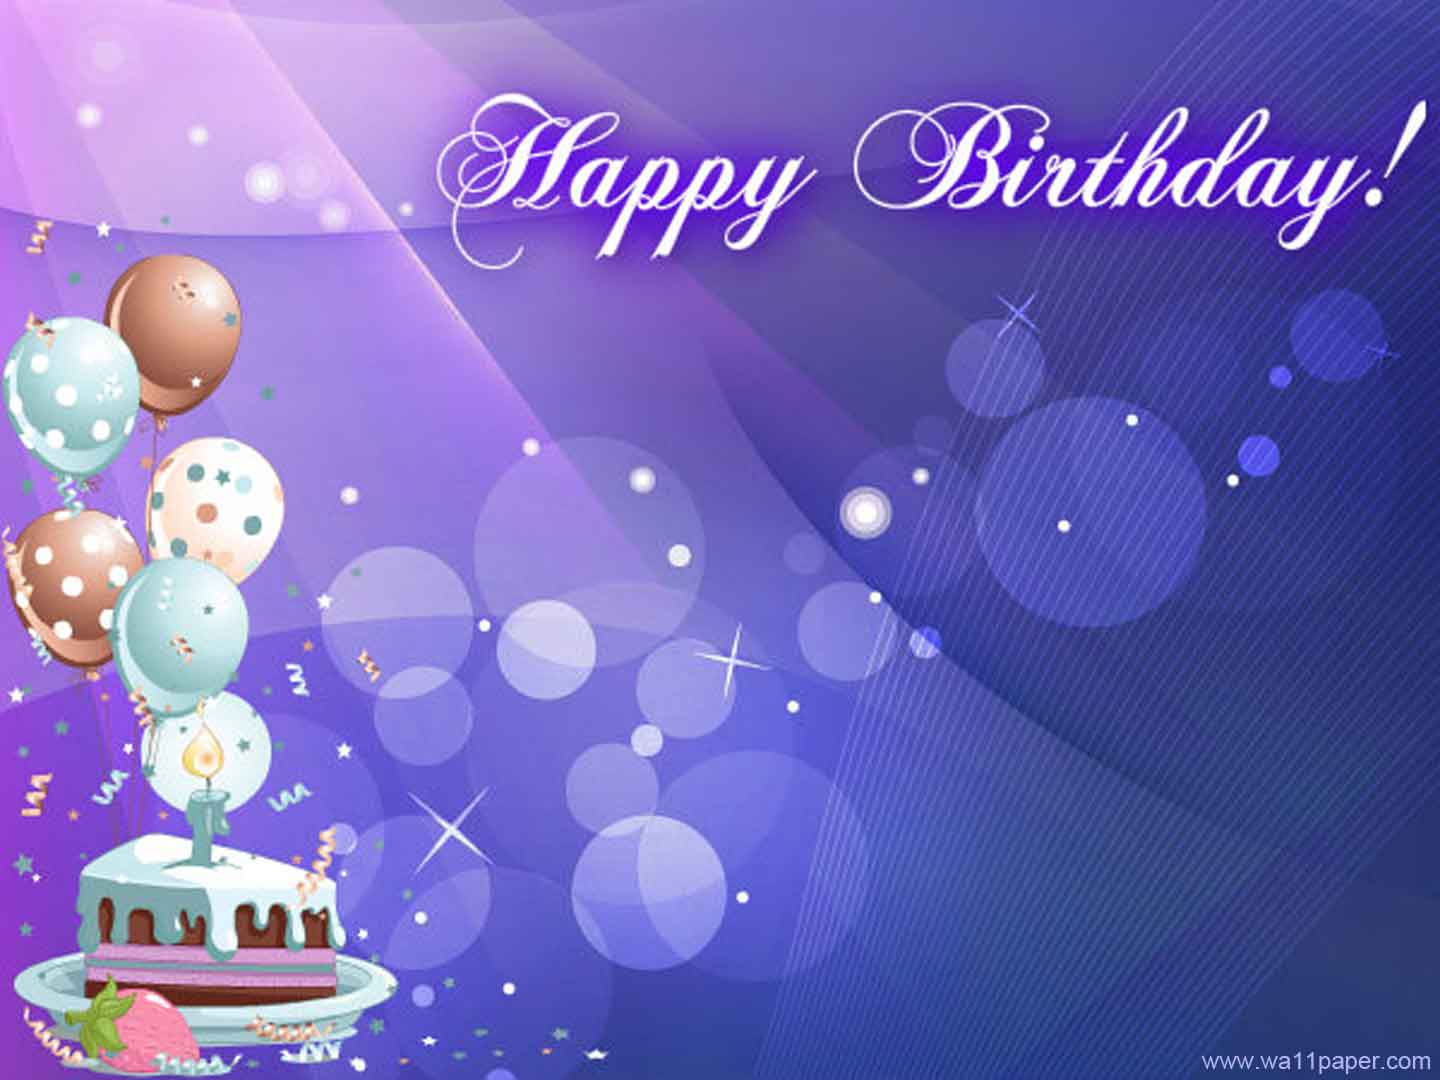 birthday Computer Wallpapers Desktop Backgrounds 1440x1080 ID 1440x1080